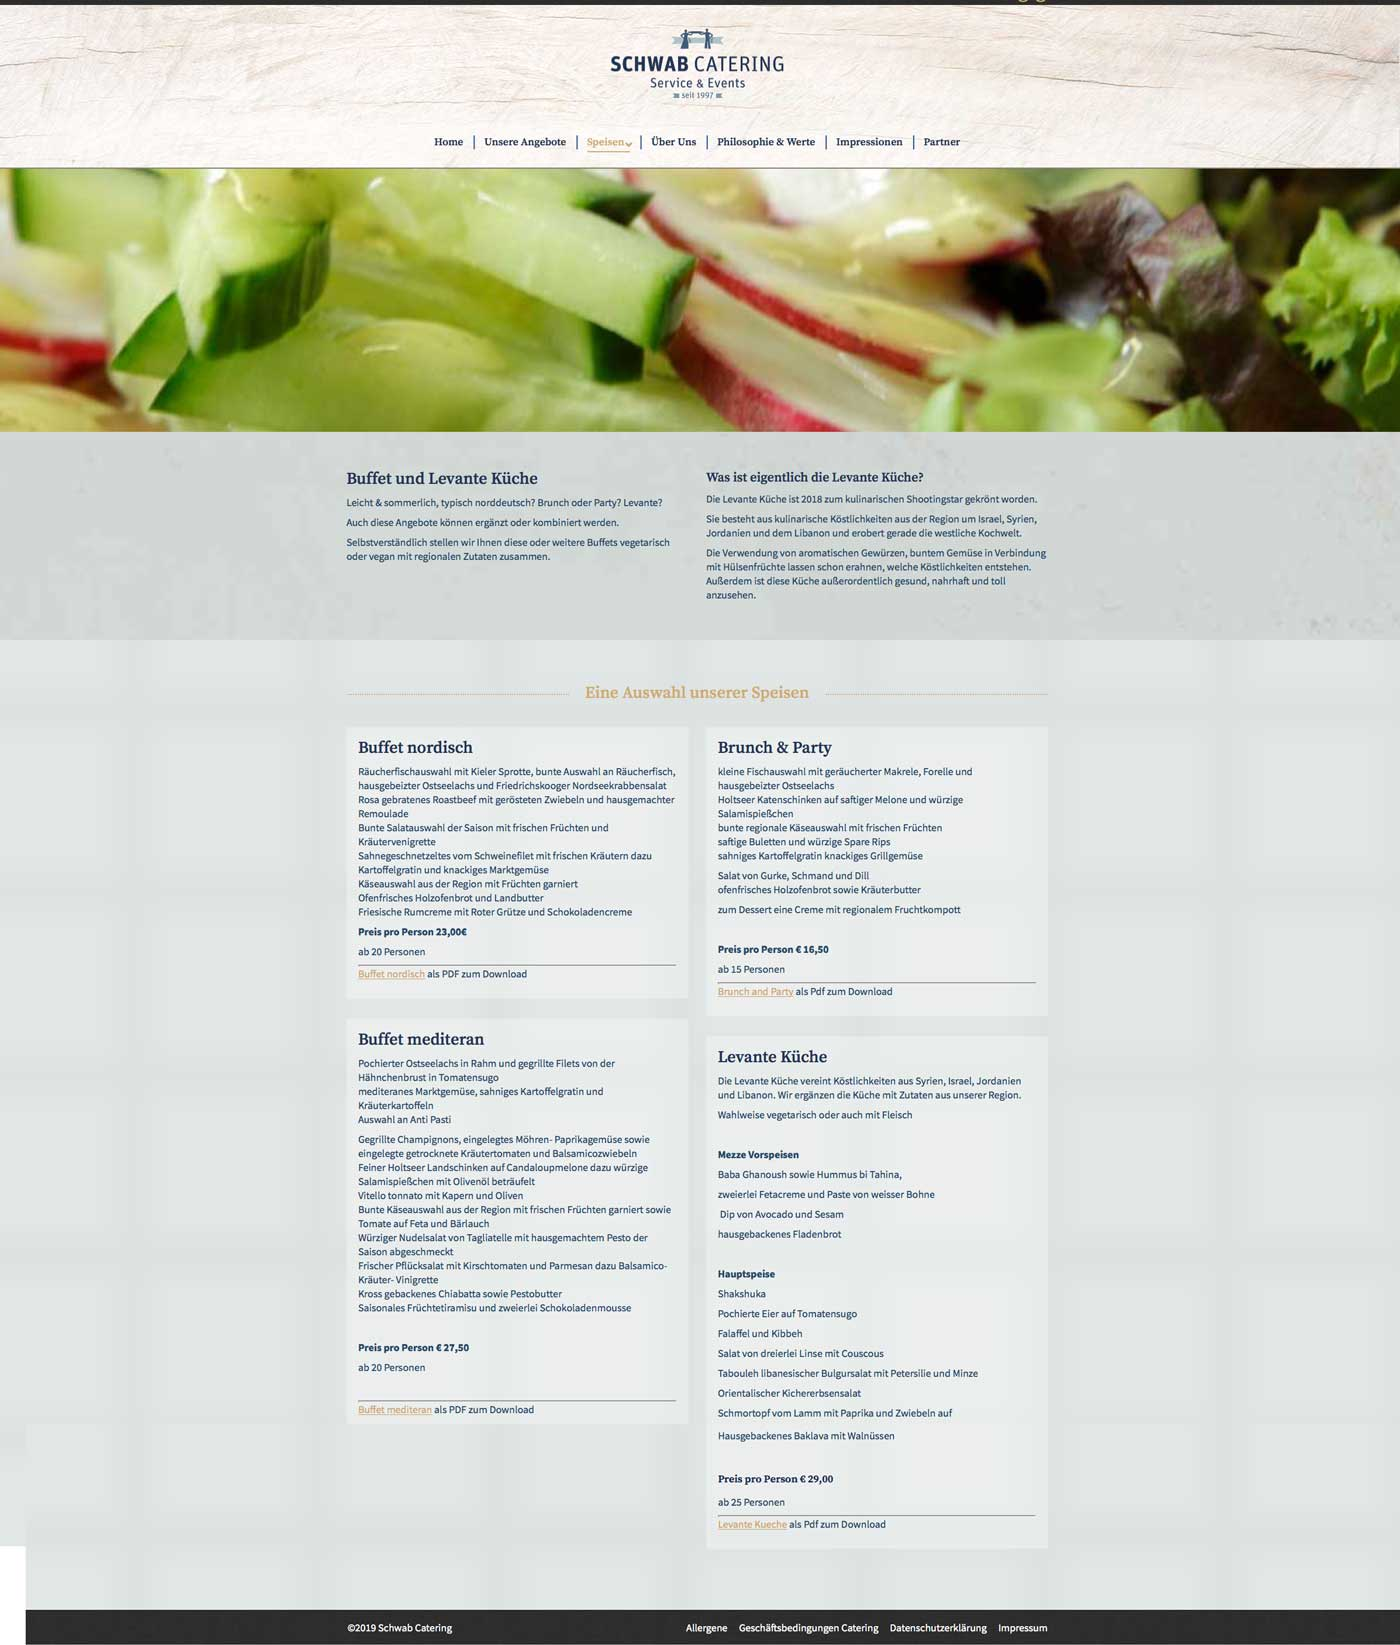 Schwab-Catering-Website-Speisen-Levante